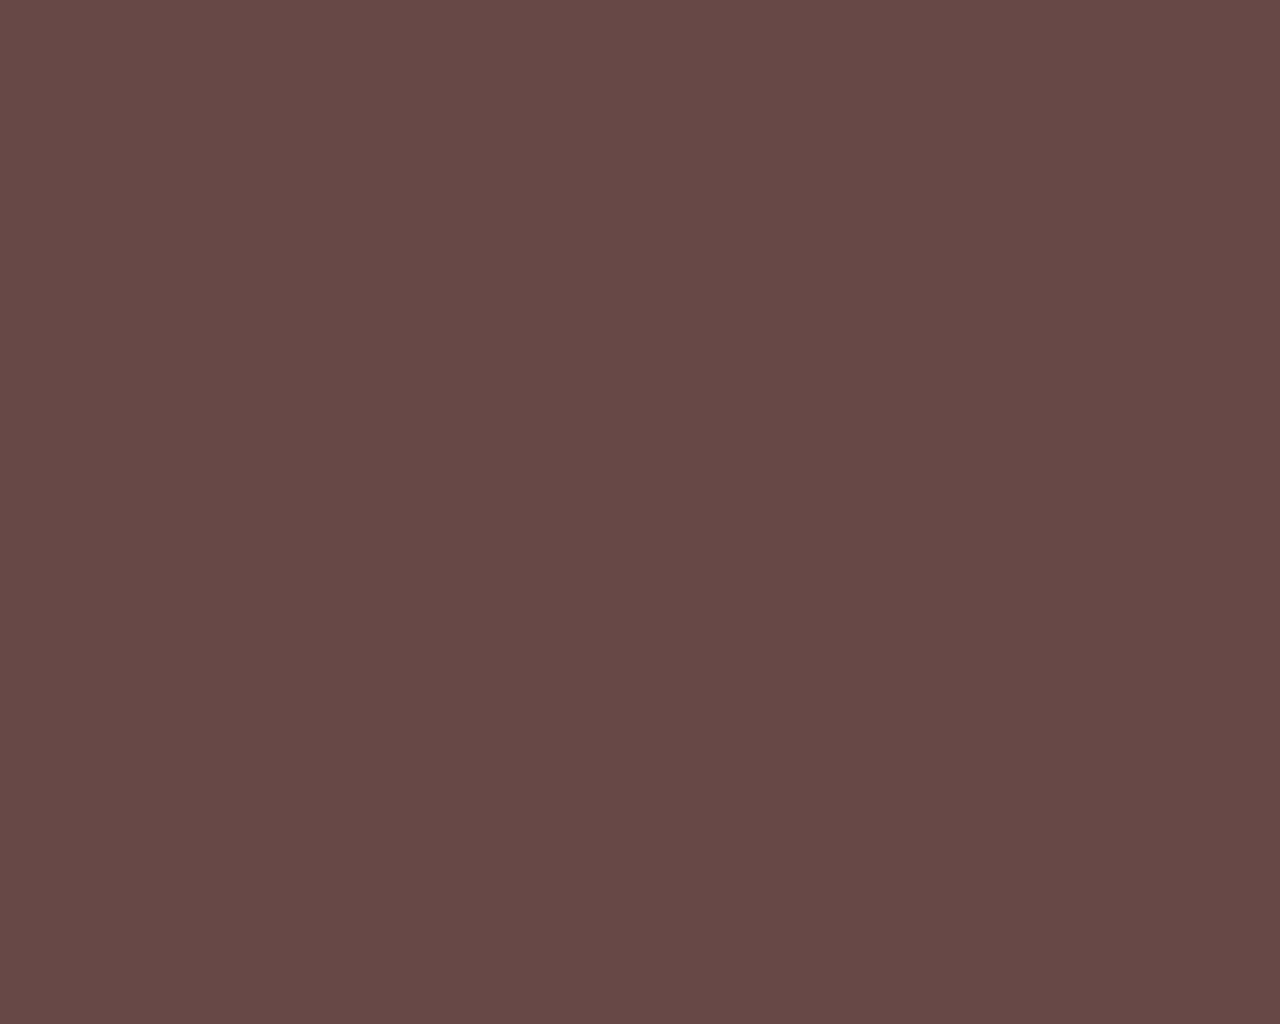 1280x1024 Rose Ebony Solid Color Background